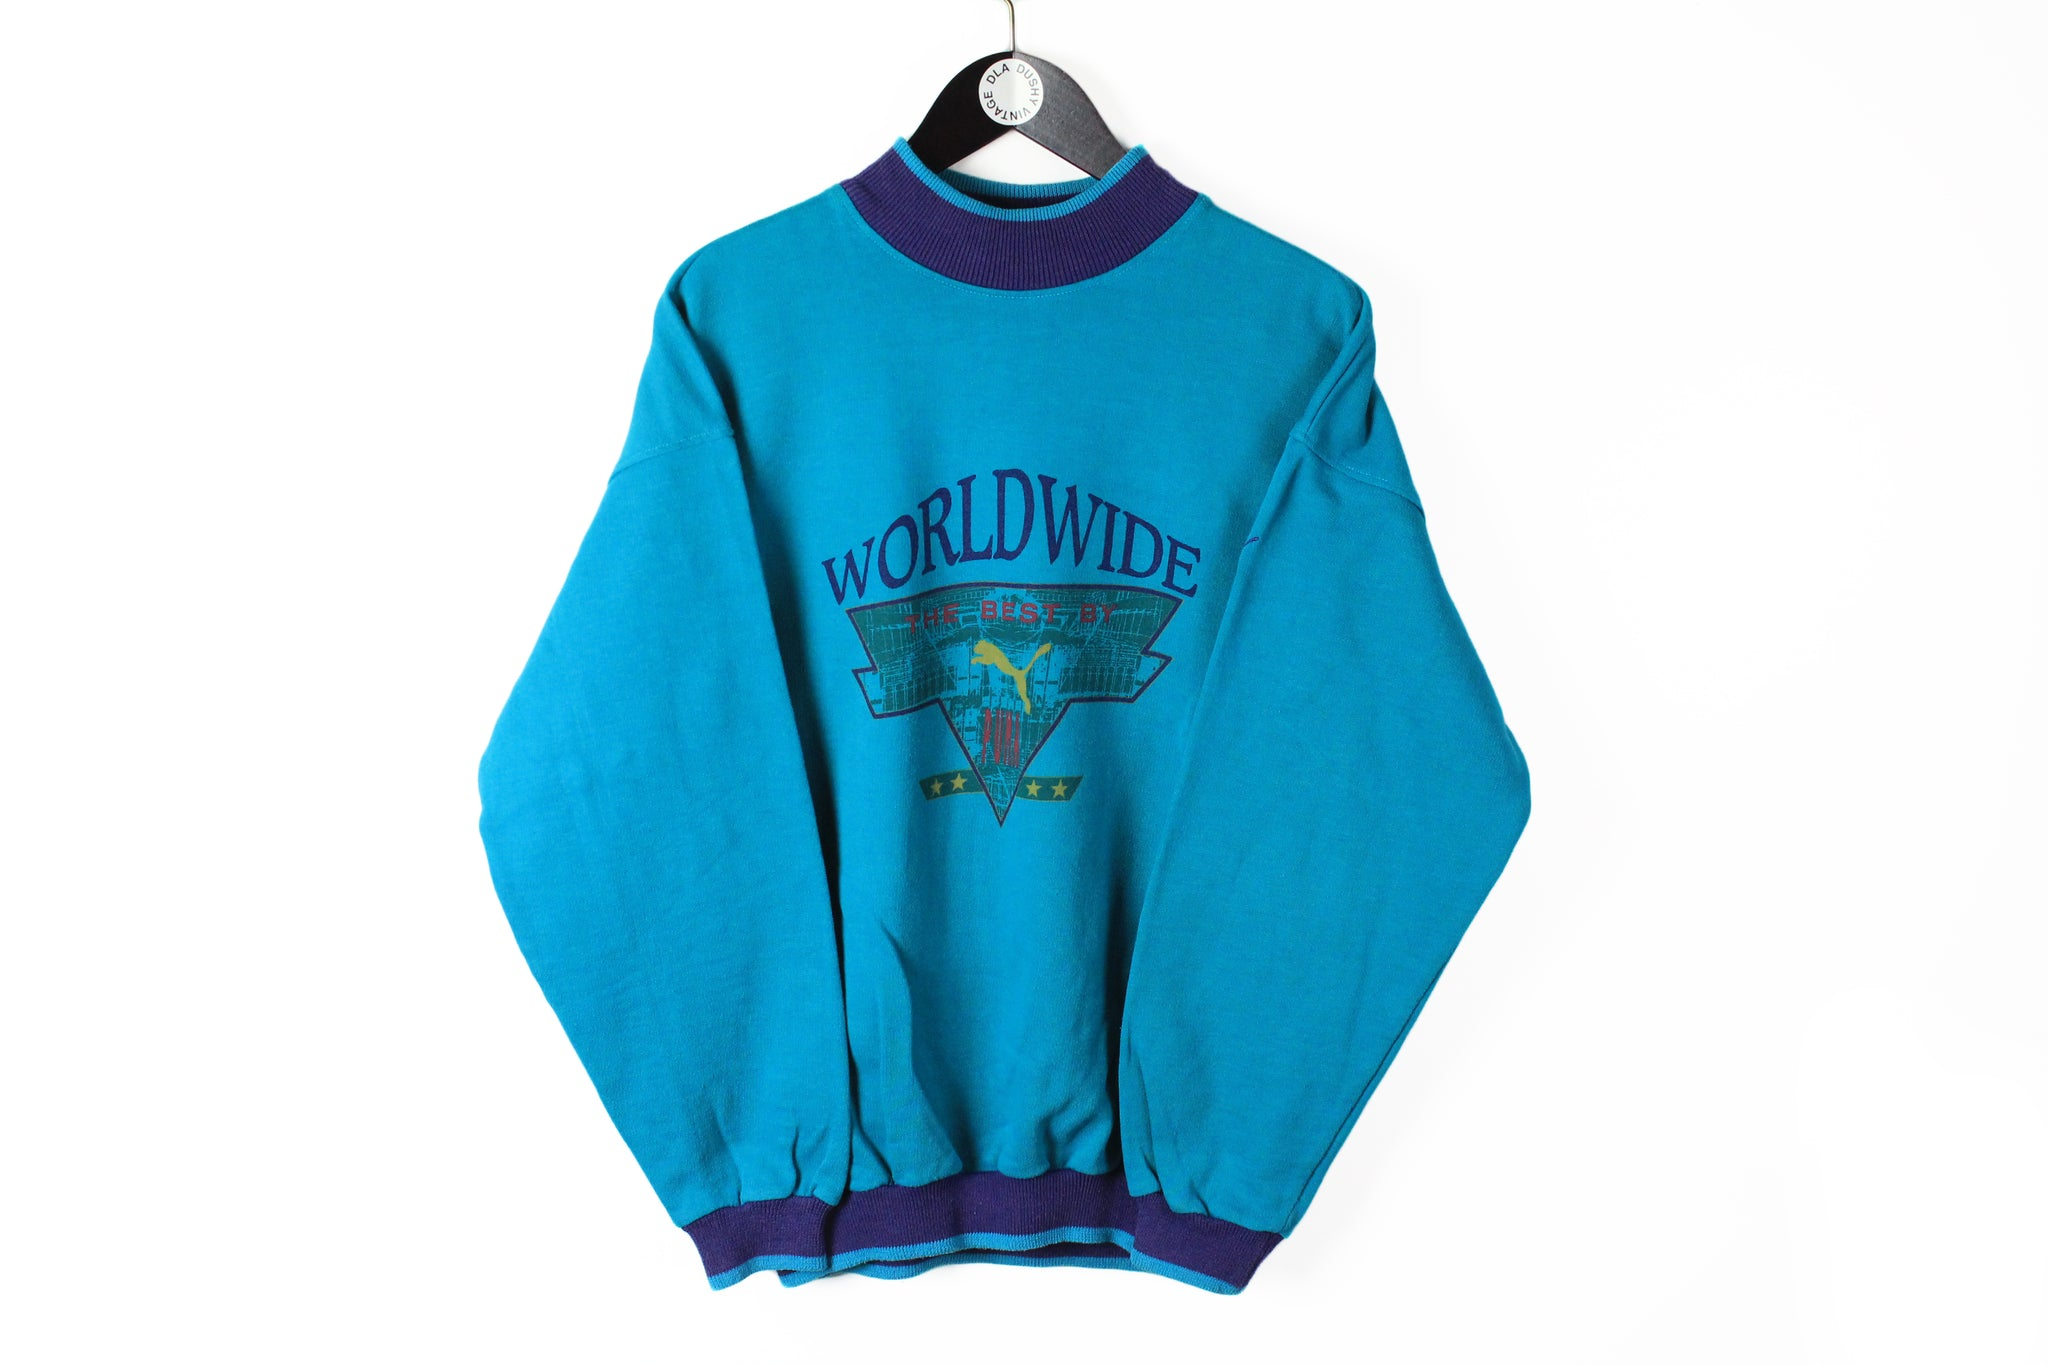 Vintage Puma Sweatshirt Medium blue Worldwide cotton 90s jumper